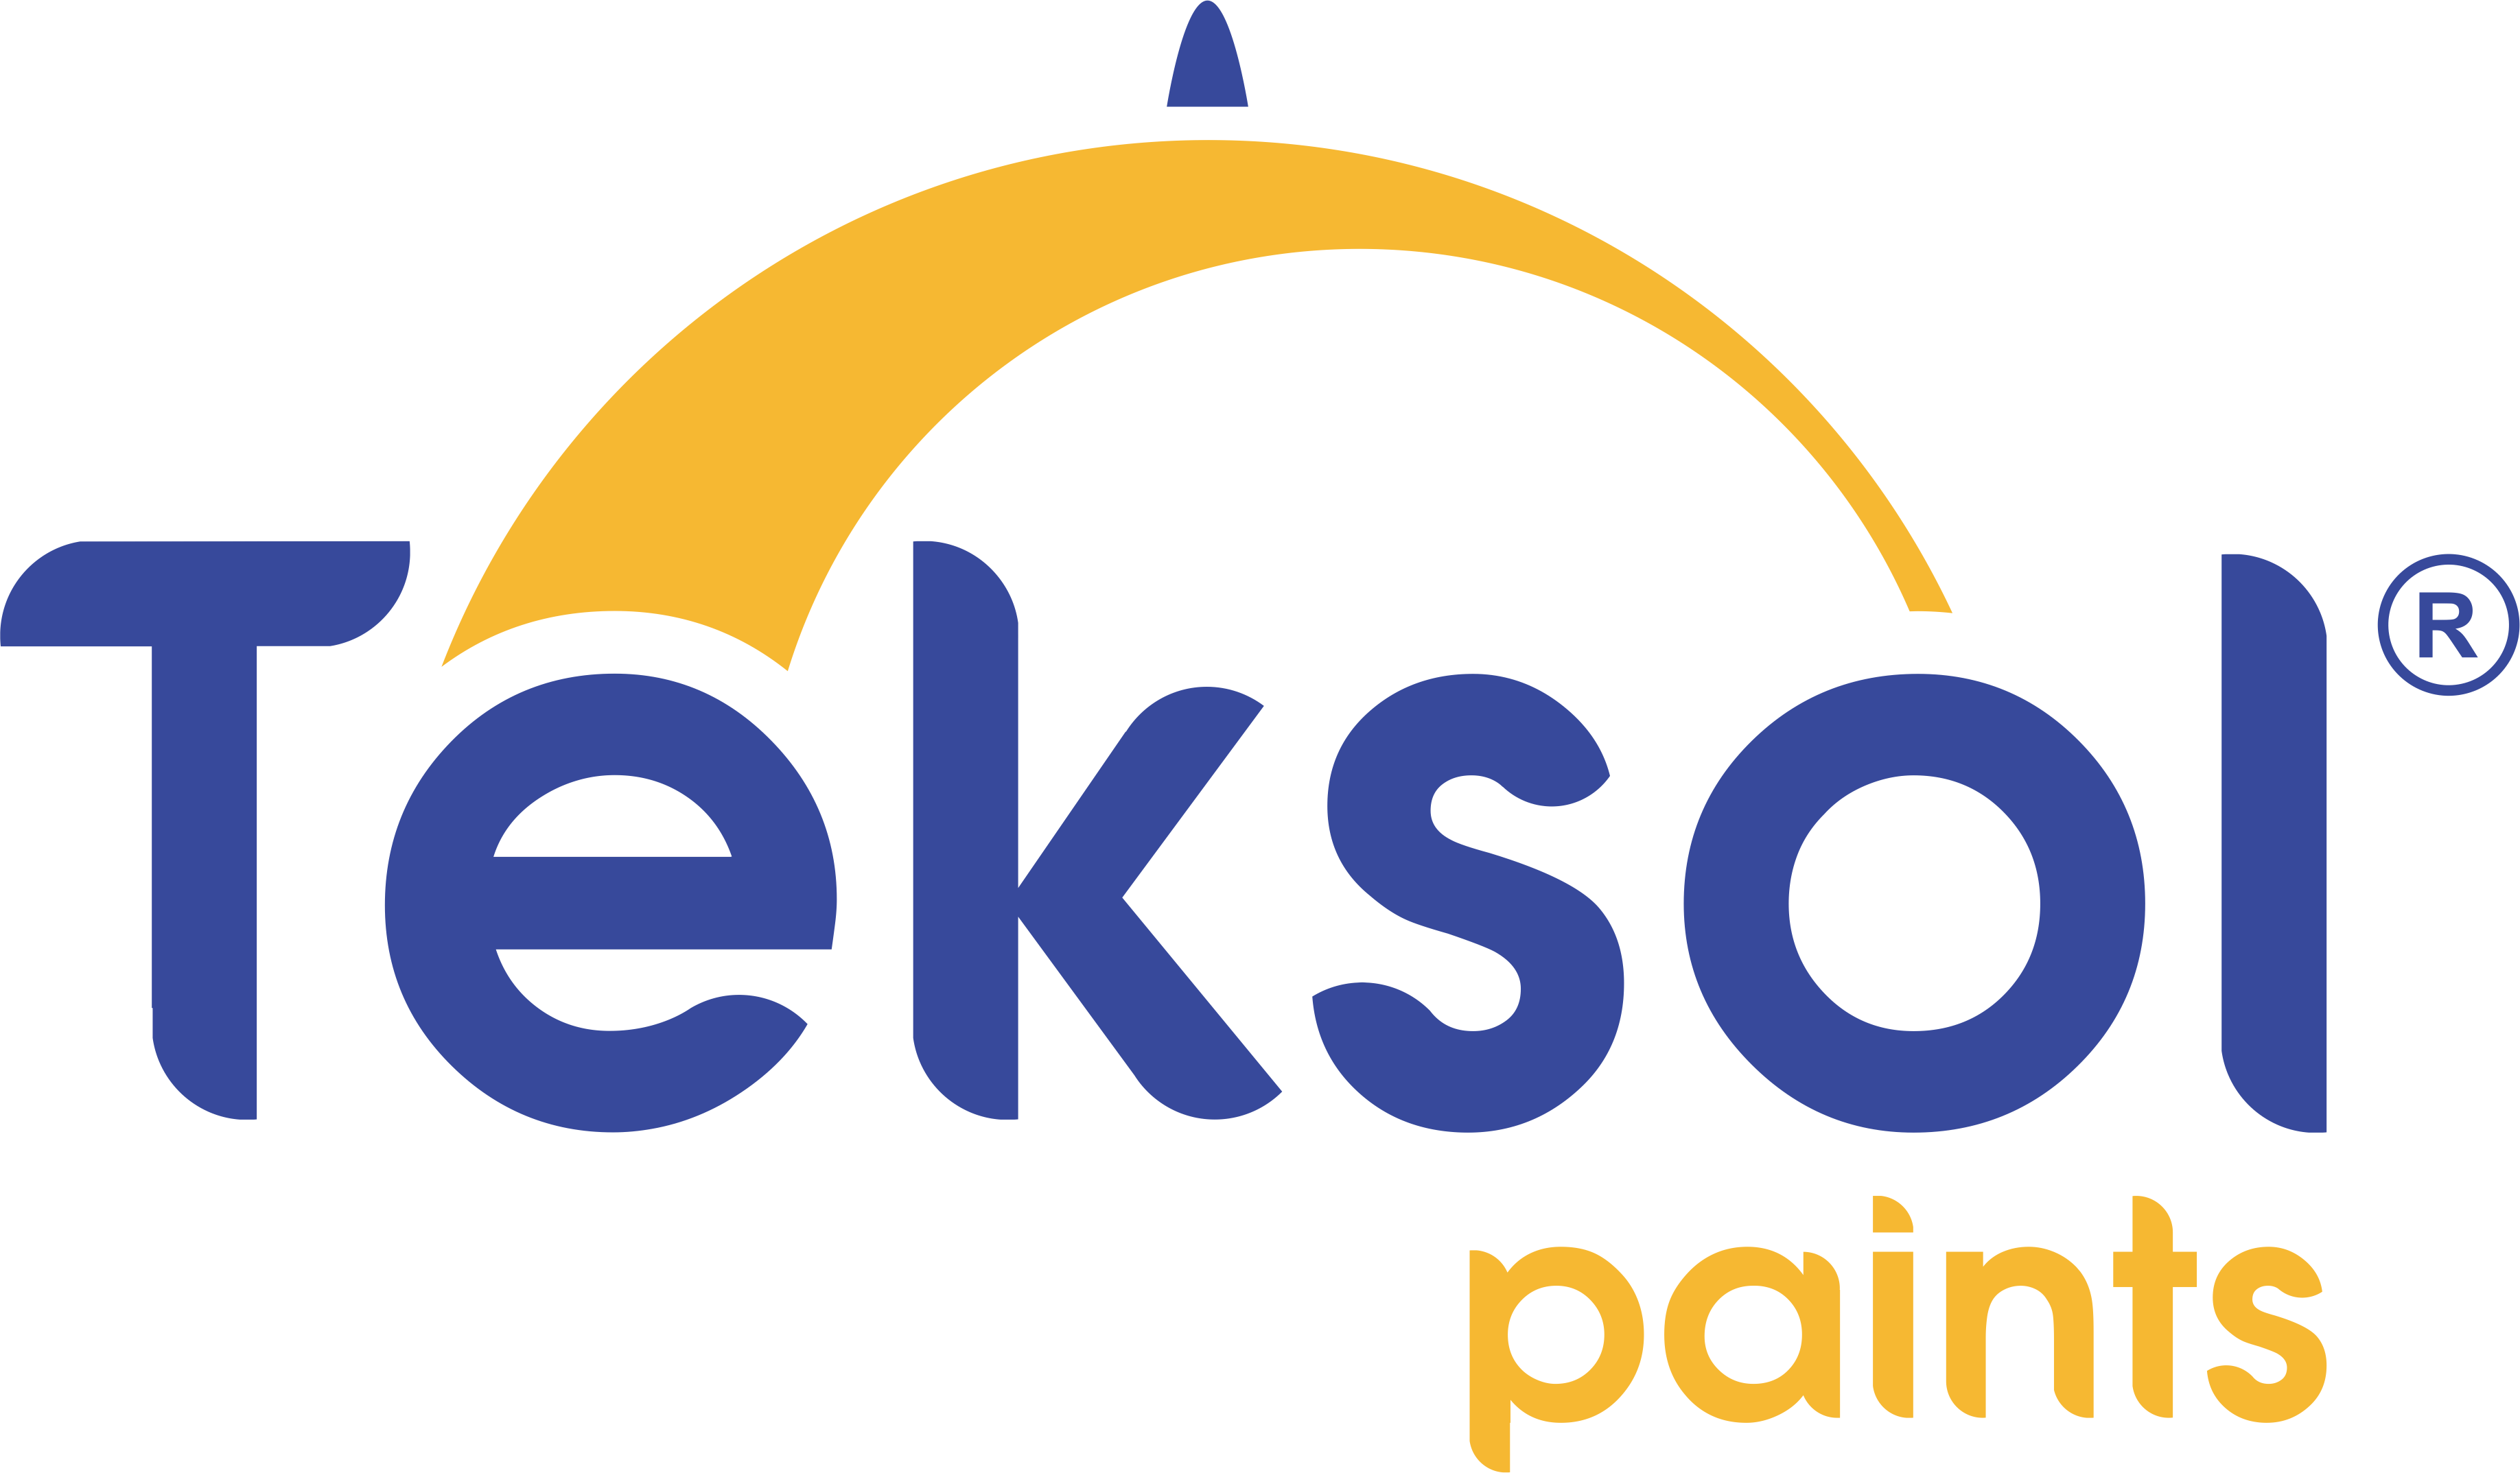 Teksol® Paints